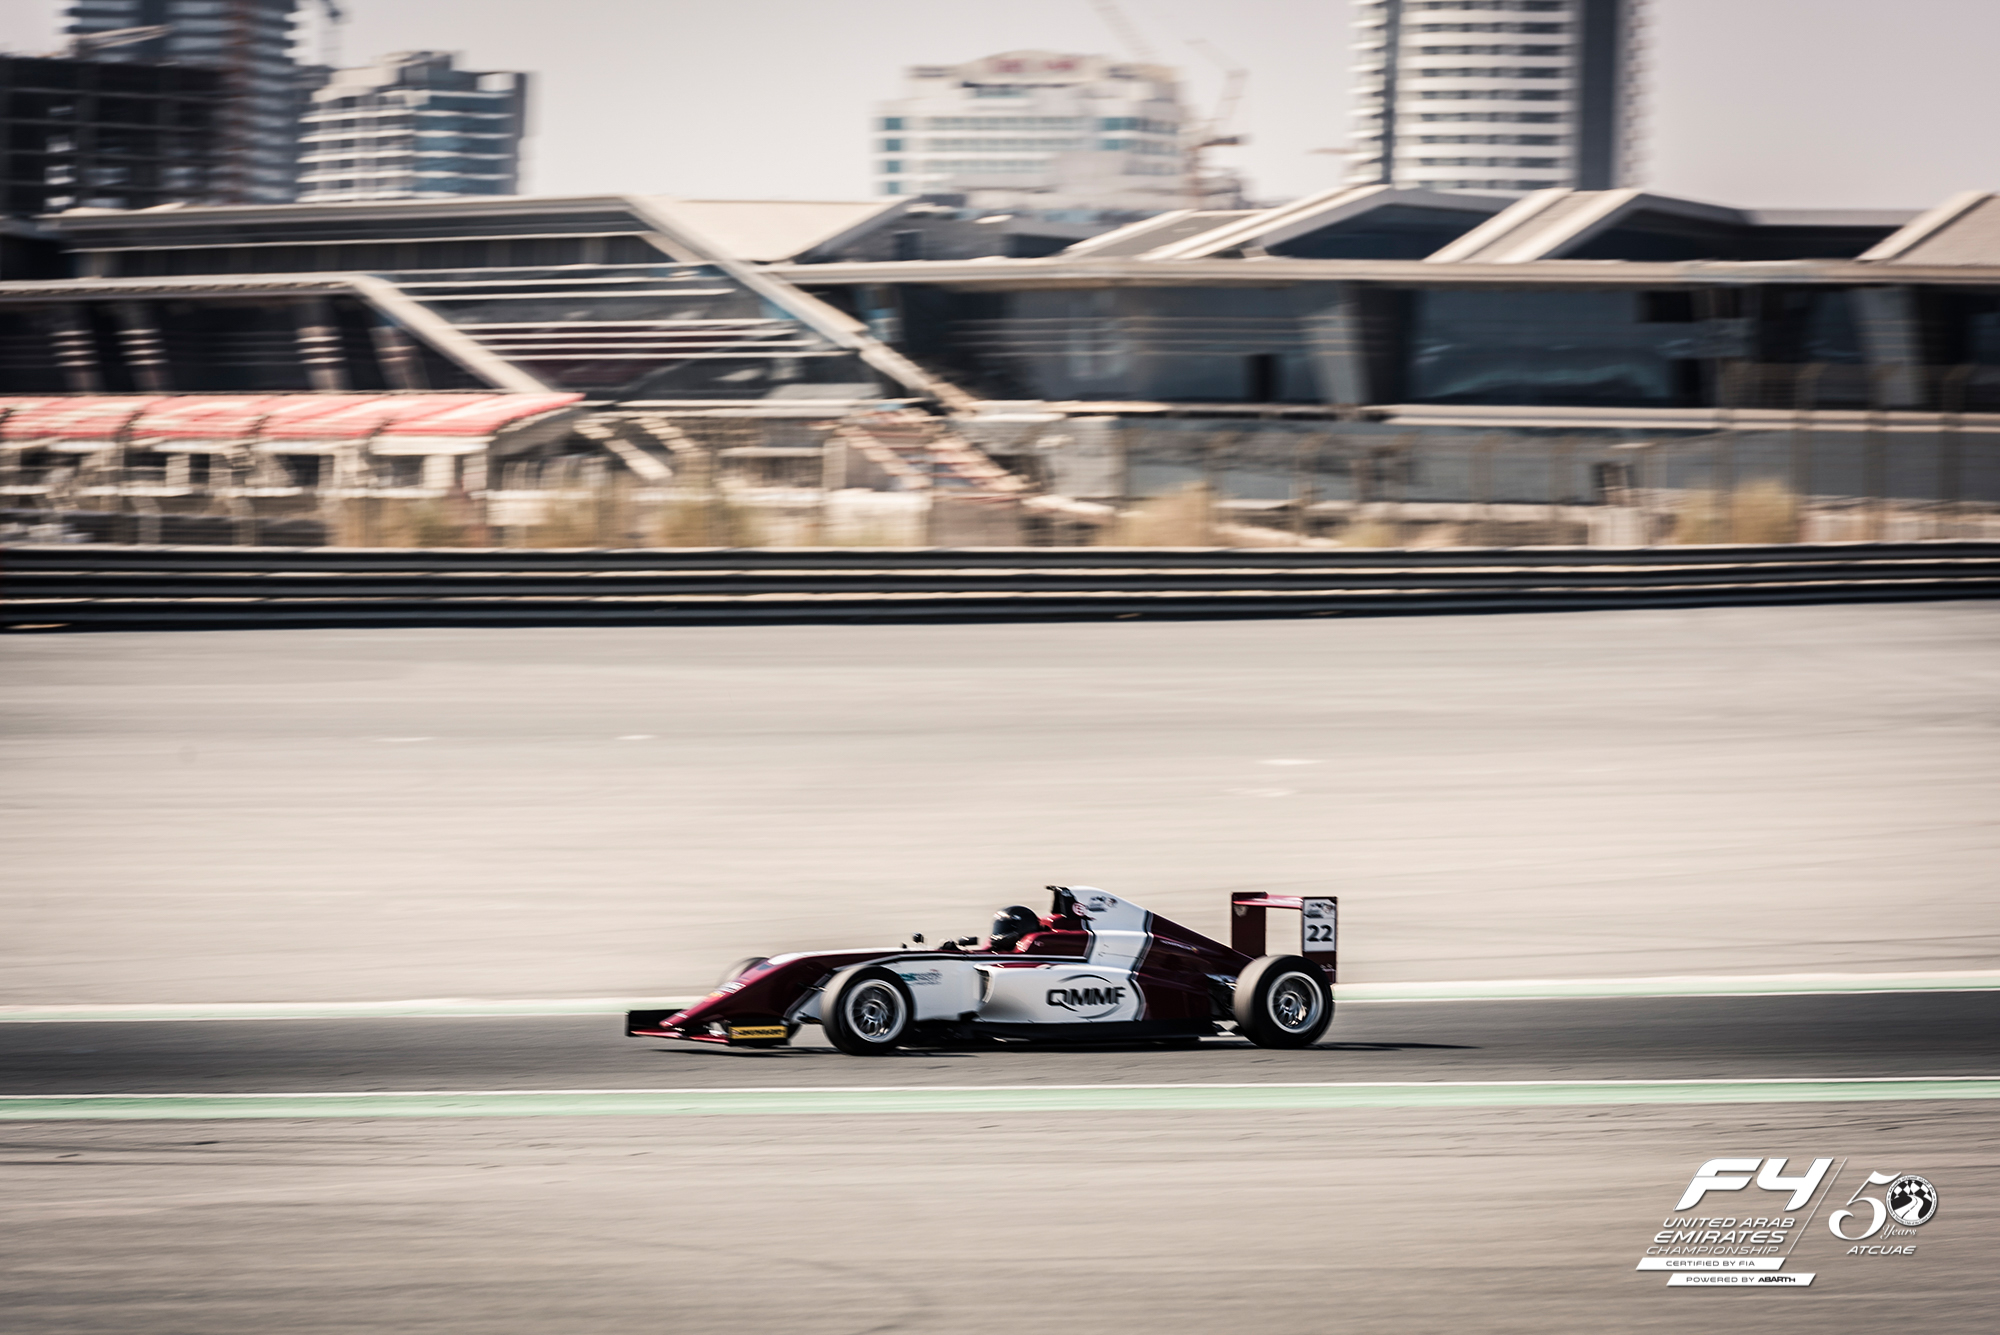 2016 10 30   Racing   Second Round   F4   Dubai    25 Of 34